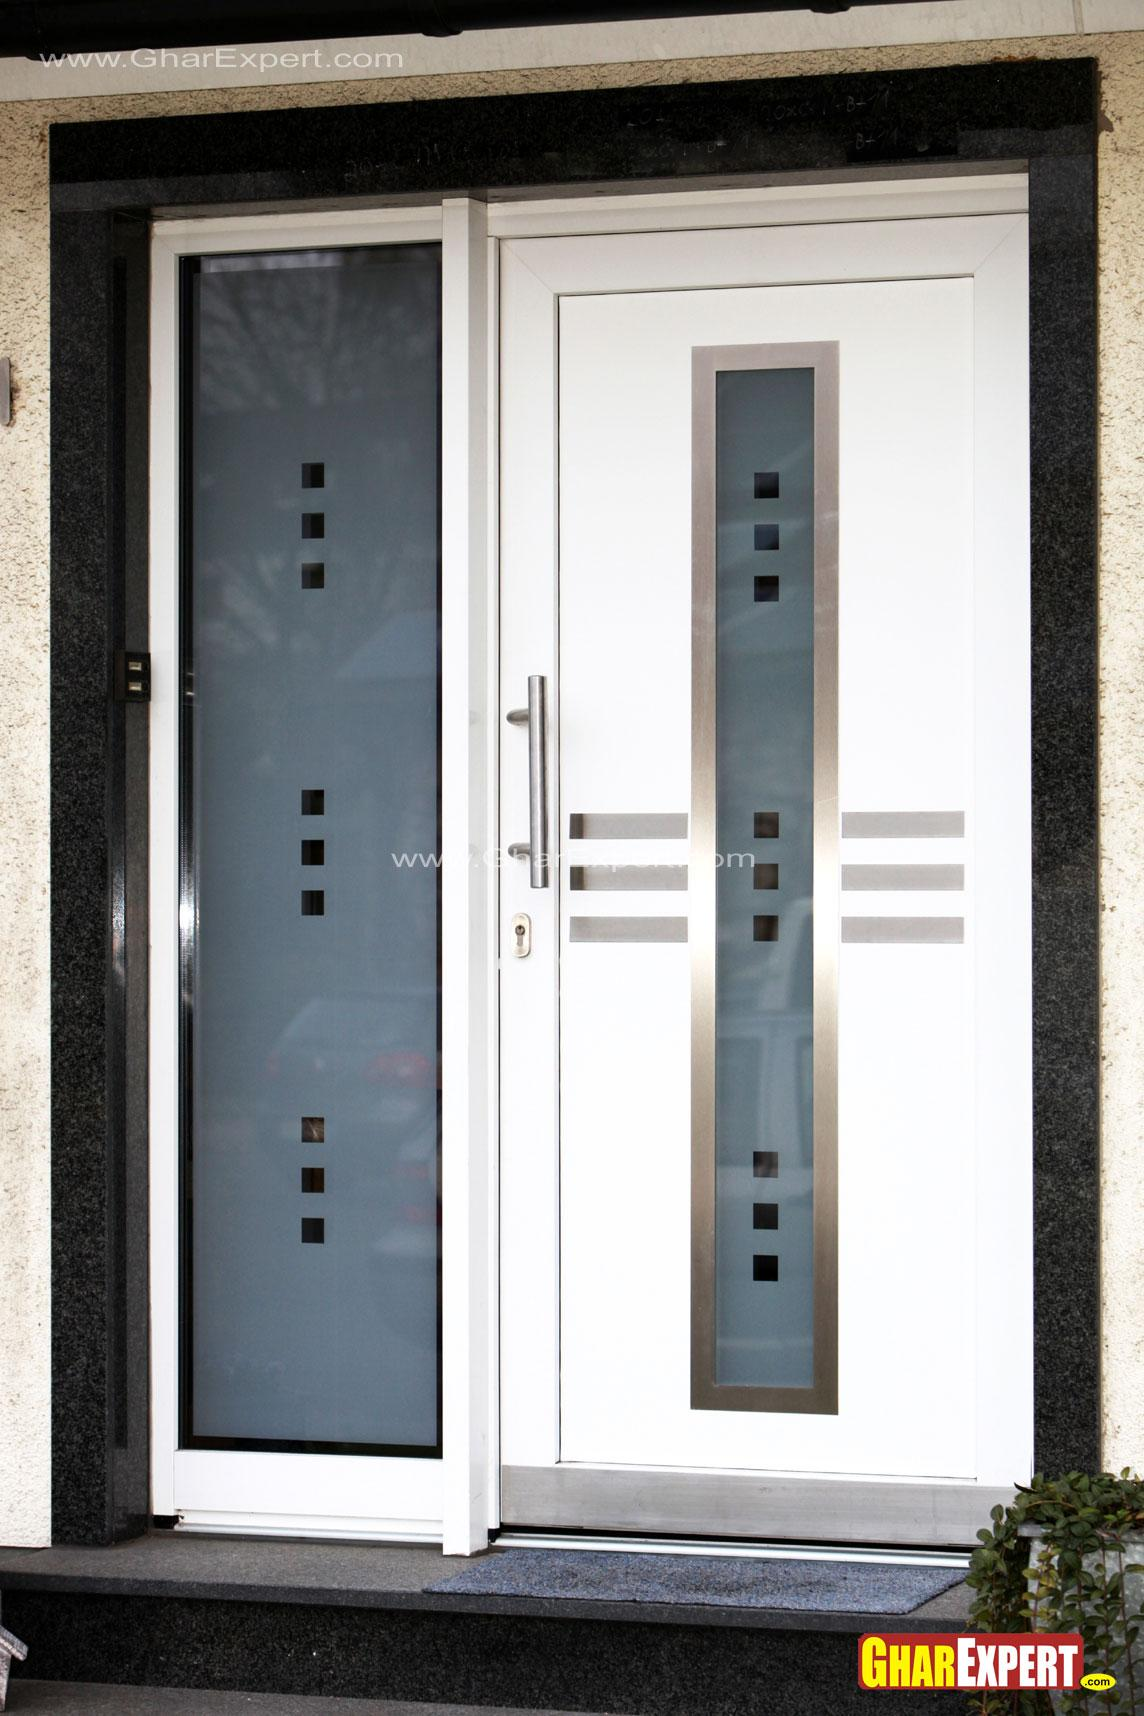 White modern entrance door design gharexpert for Entrance door designs for flats in india